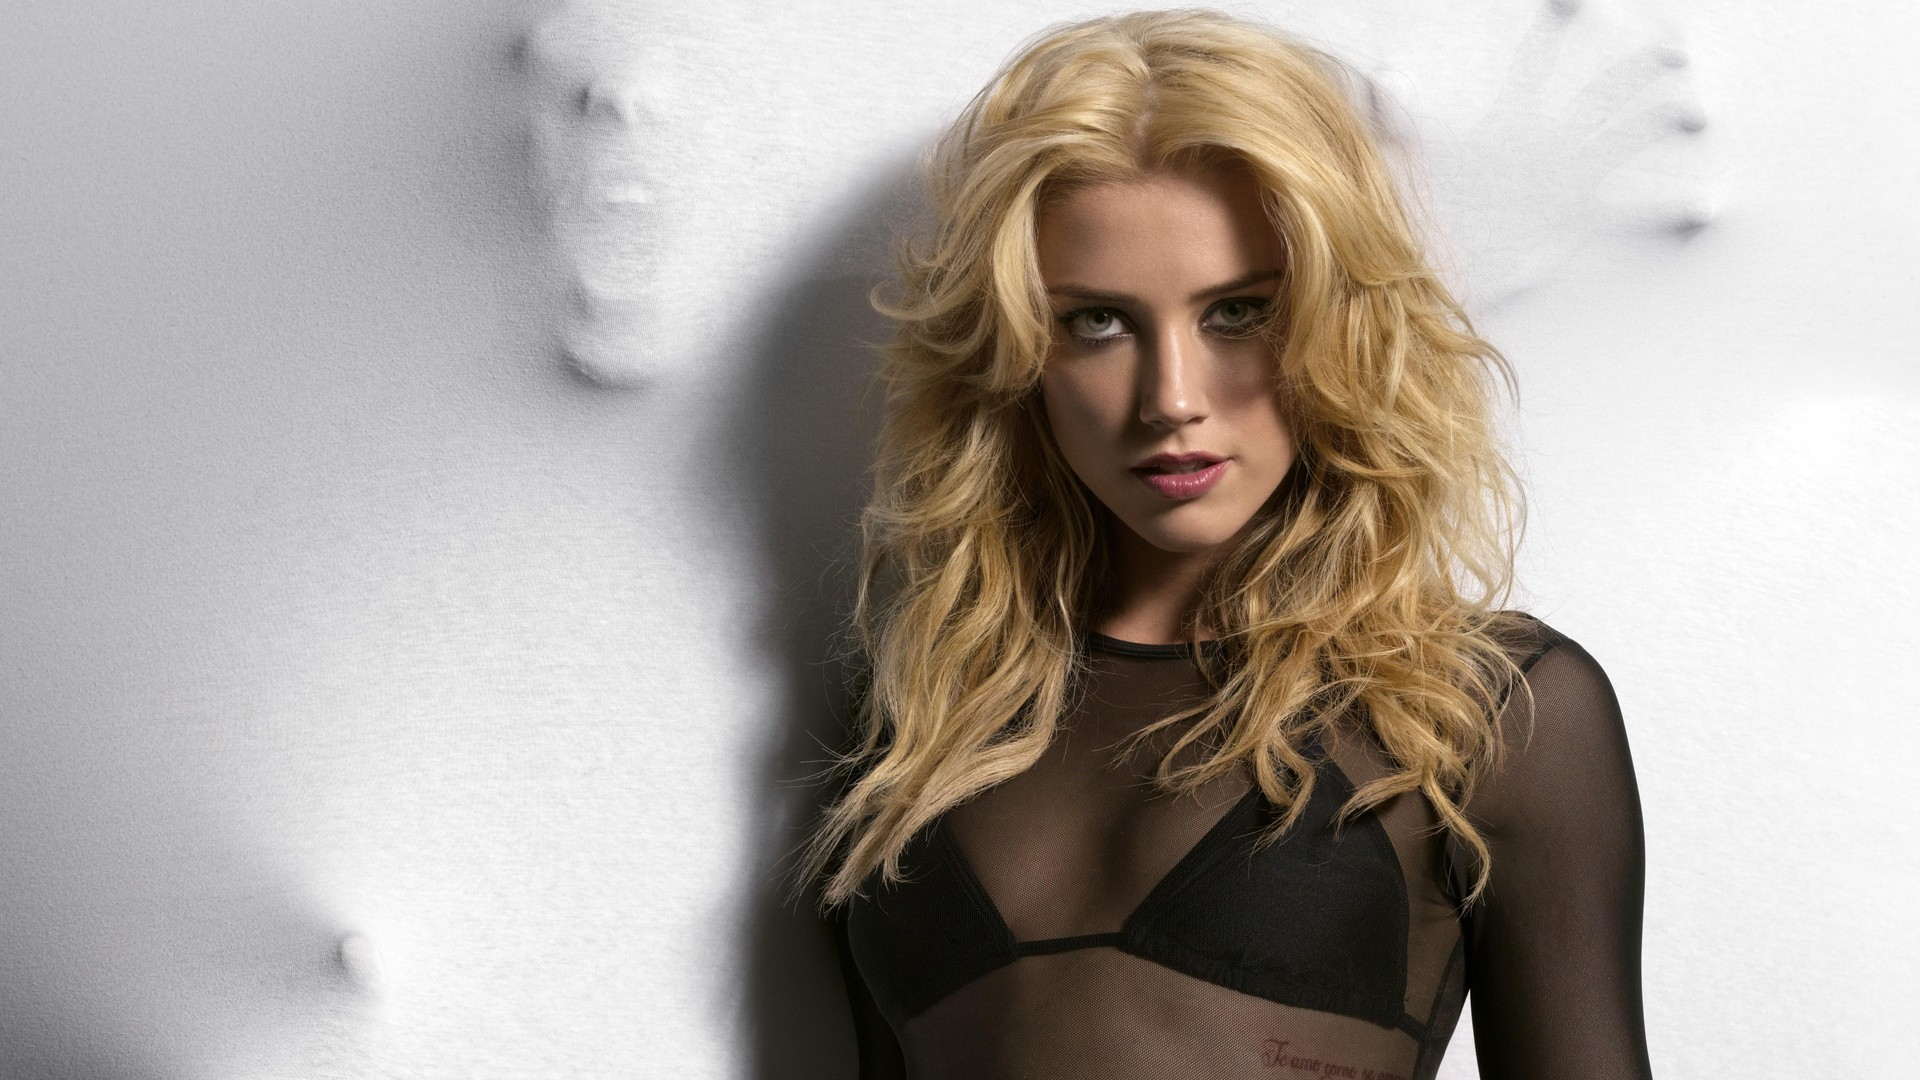 Amber-Heard-wallpaper-wp360161